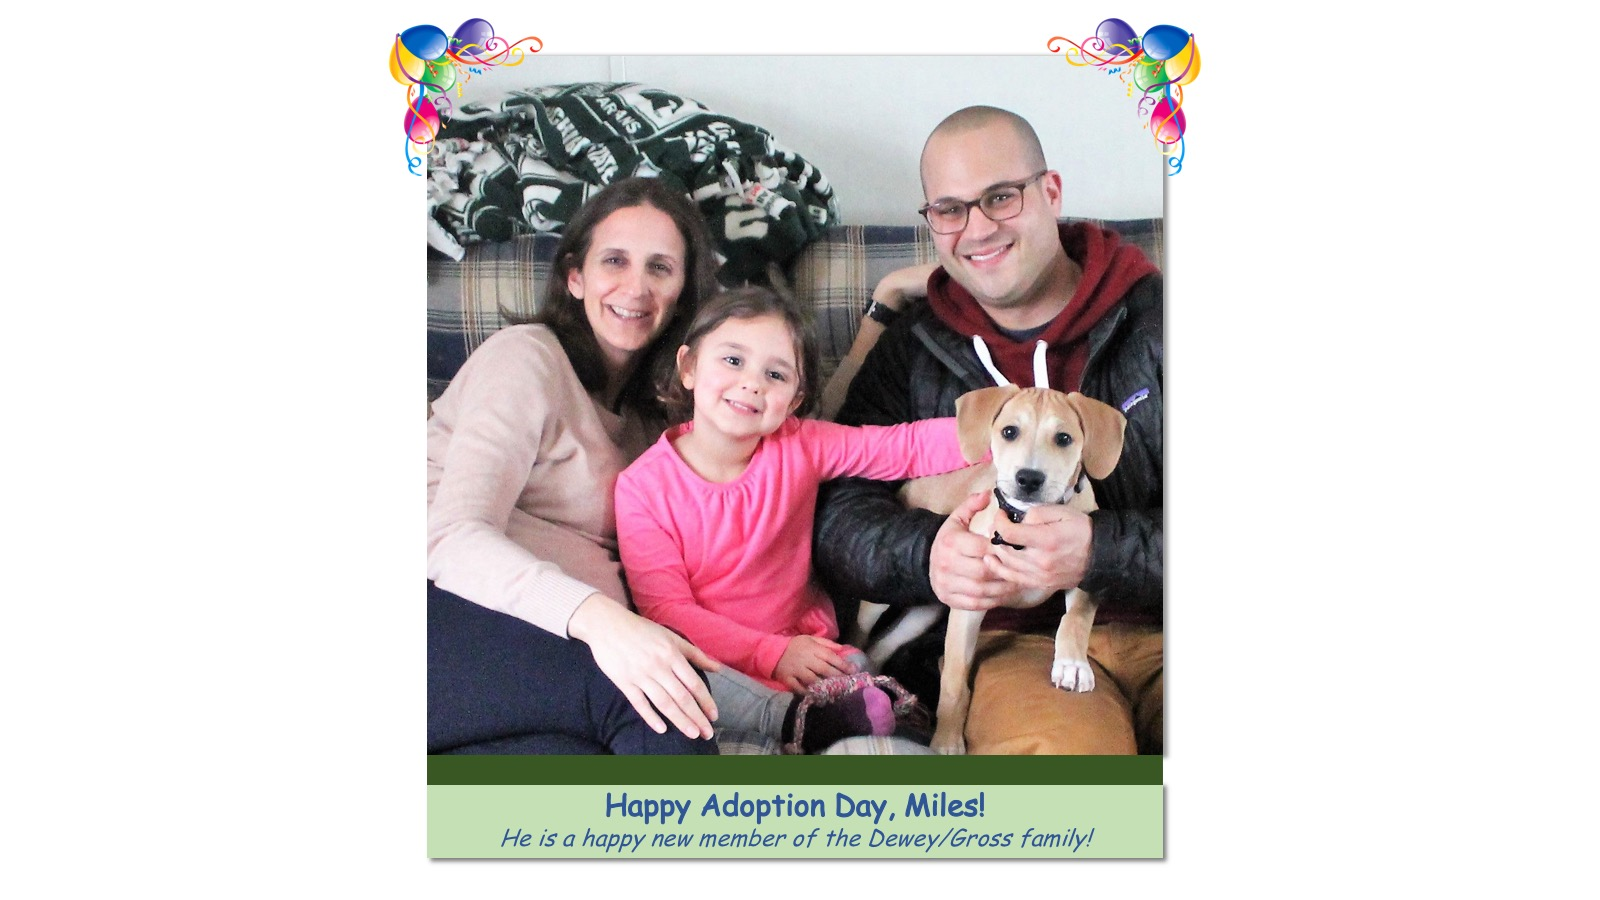 Miles_Adoption_Photo_2018.jpg